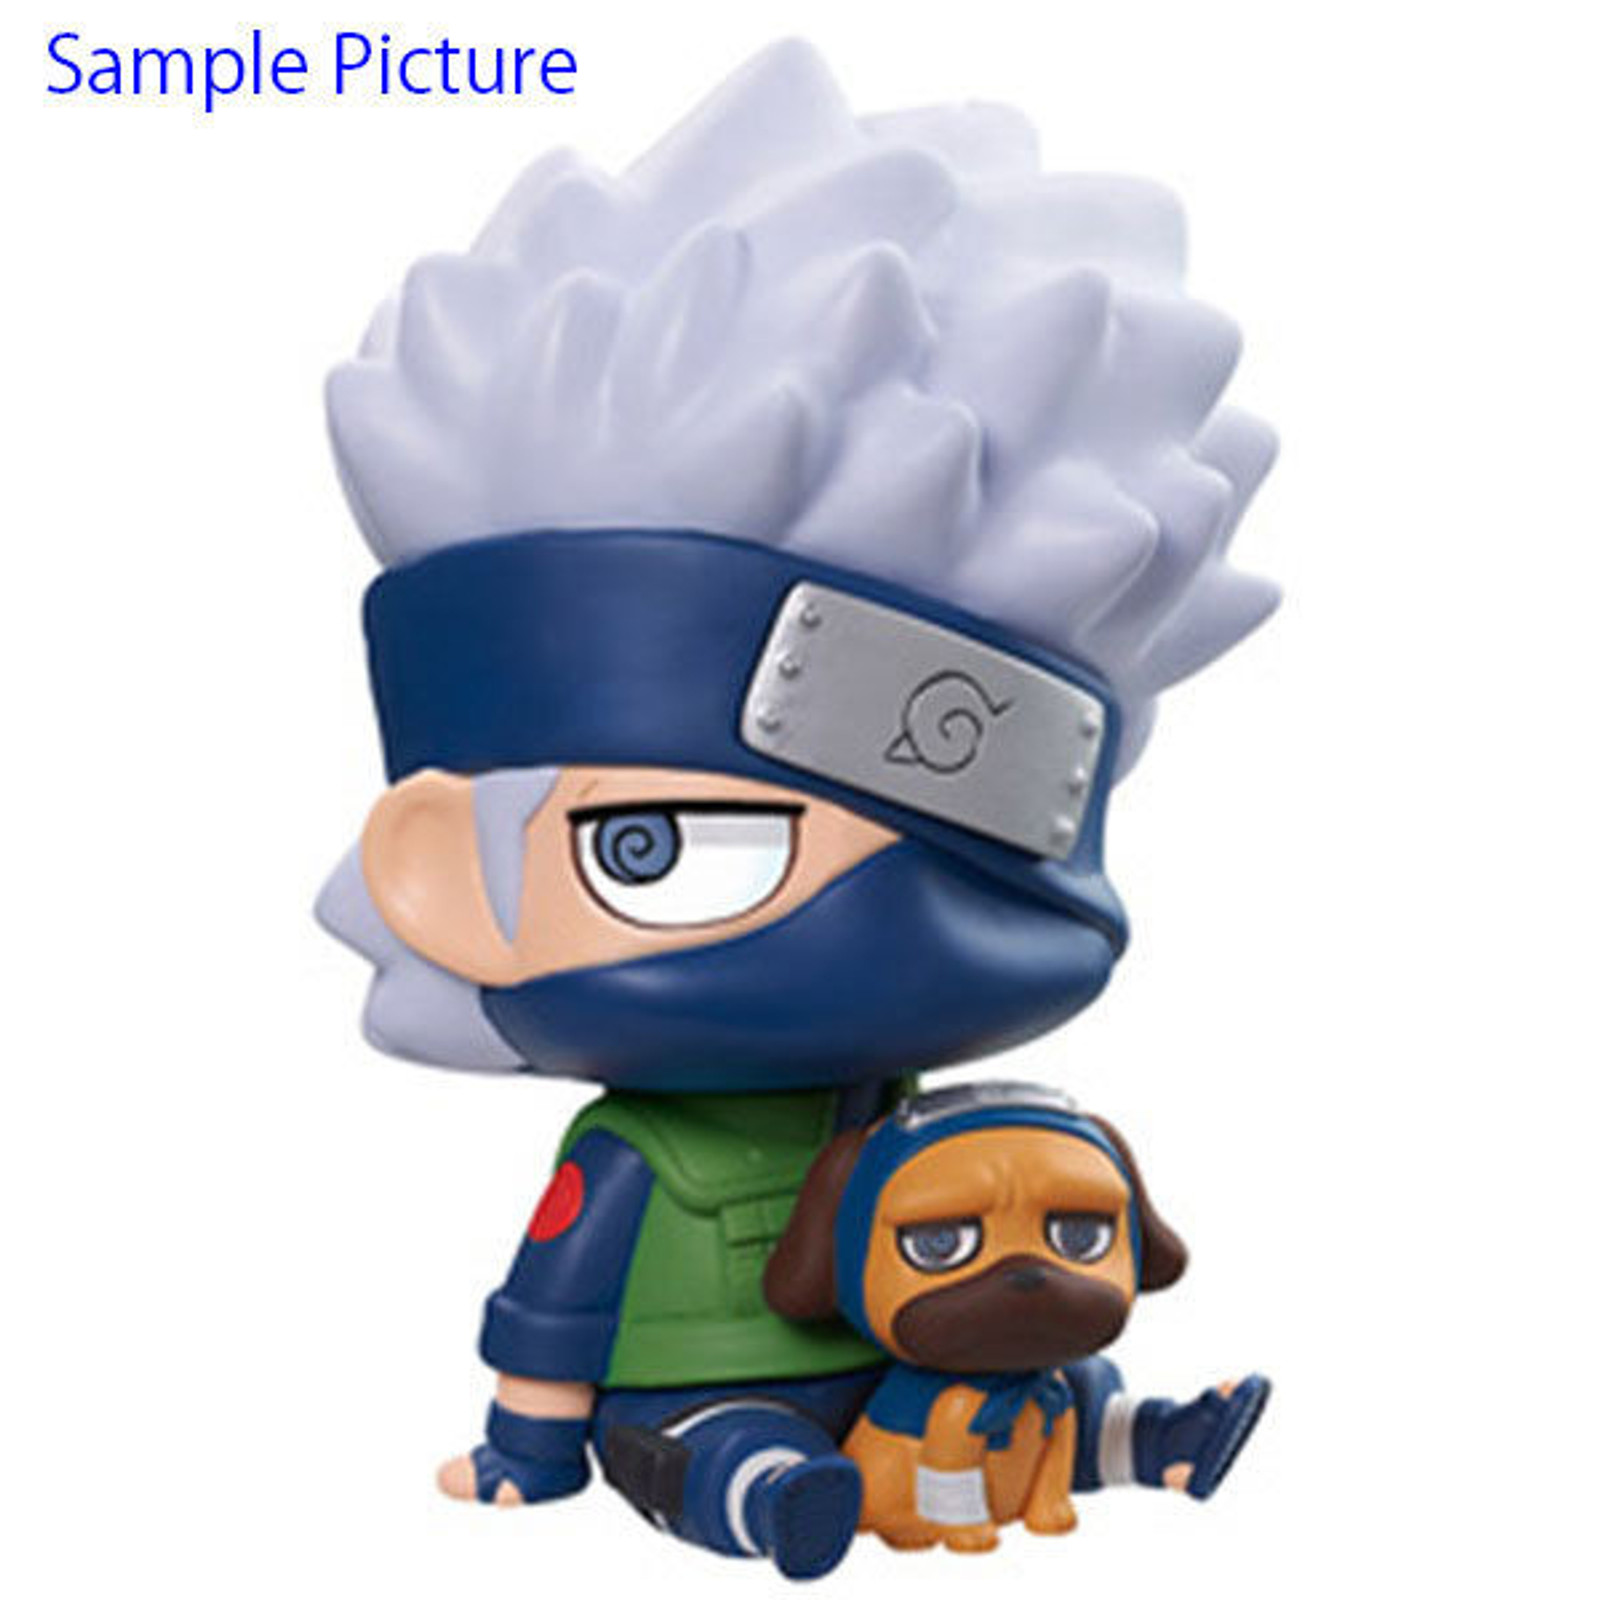 NARUTO Kakashi Hatake & Packun Chimi Mega Soft Vinyl Series Figure Megahouse JAPAN ANIME